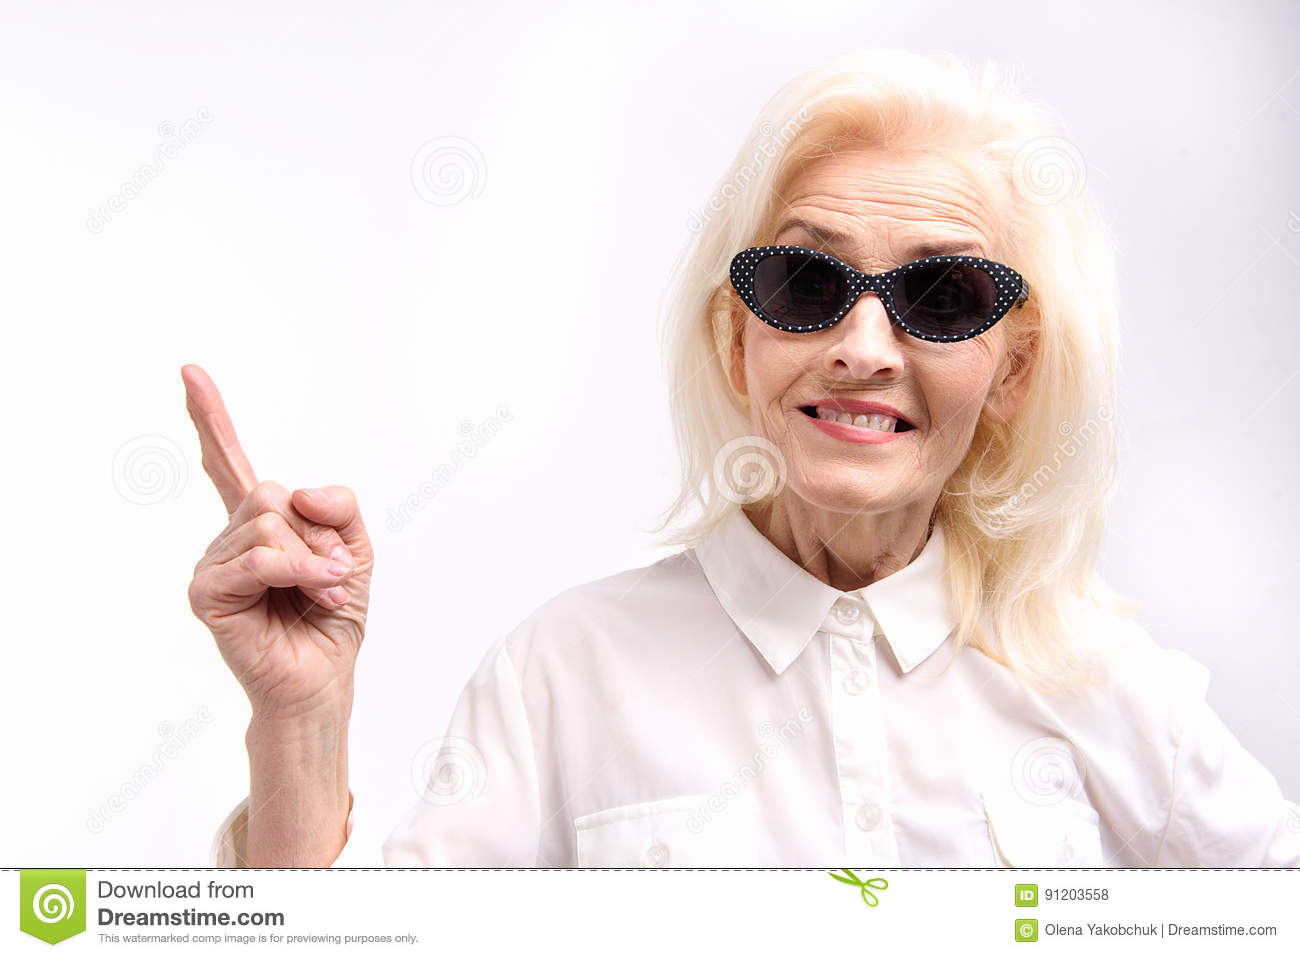 205ac466eca Mature lady in sunglasses is looking at camera with bright smile and pointing  up. Portrait. Isolated. Copy space on left side